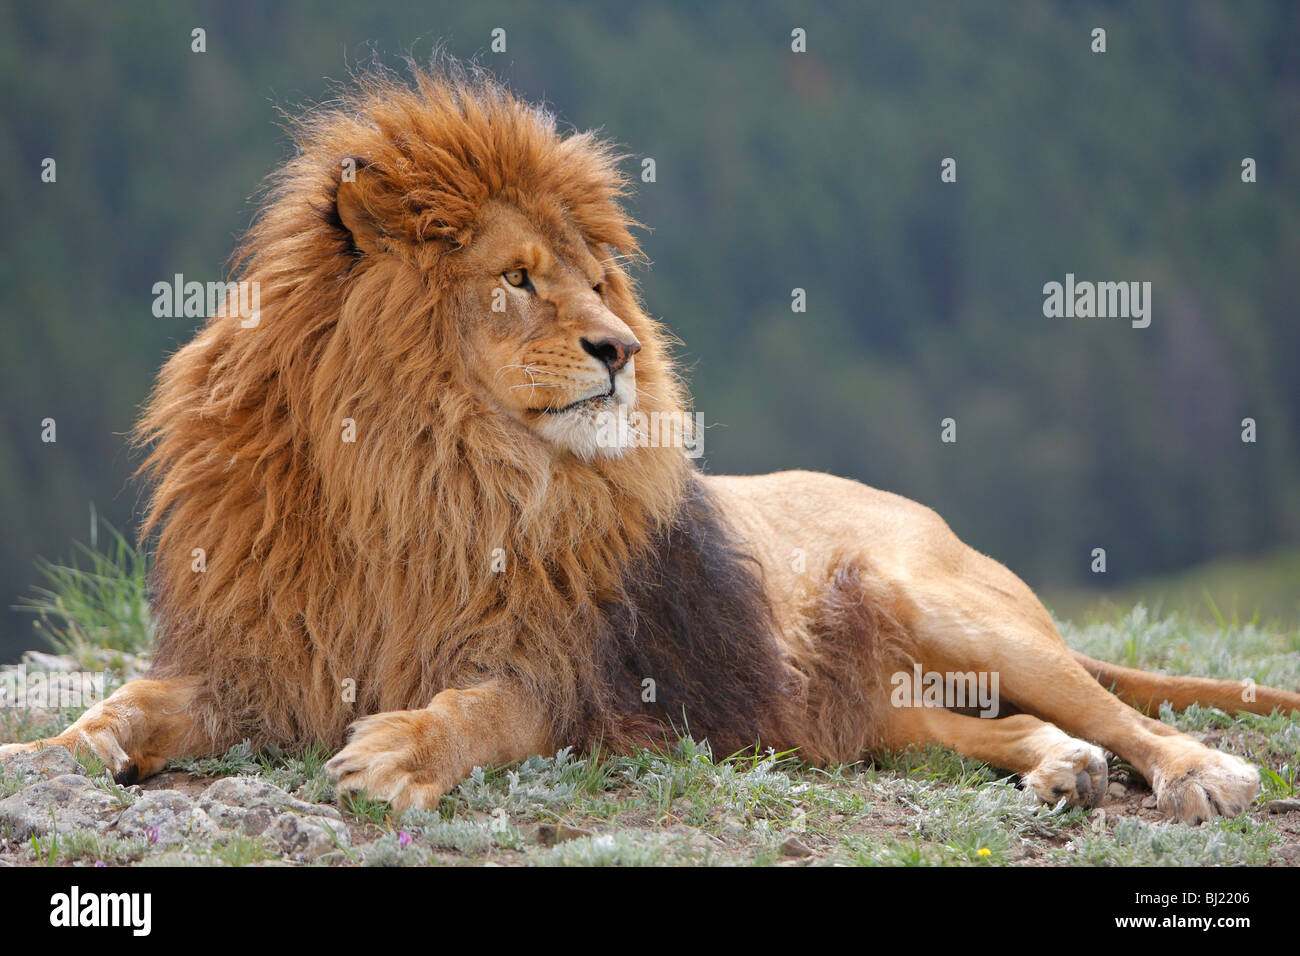 Lion de Barbarie (Panthera leo leo), mensonge mâle. Photo Stock